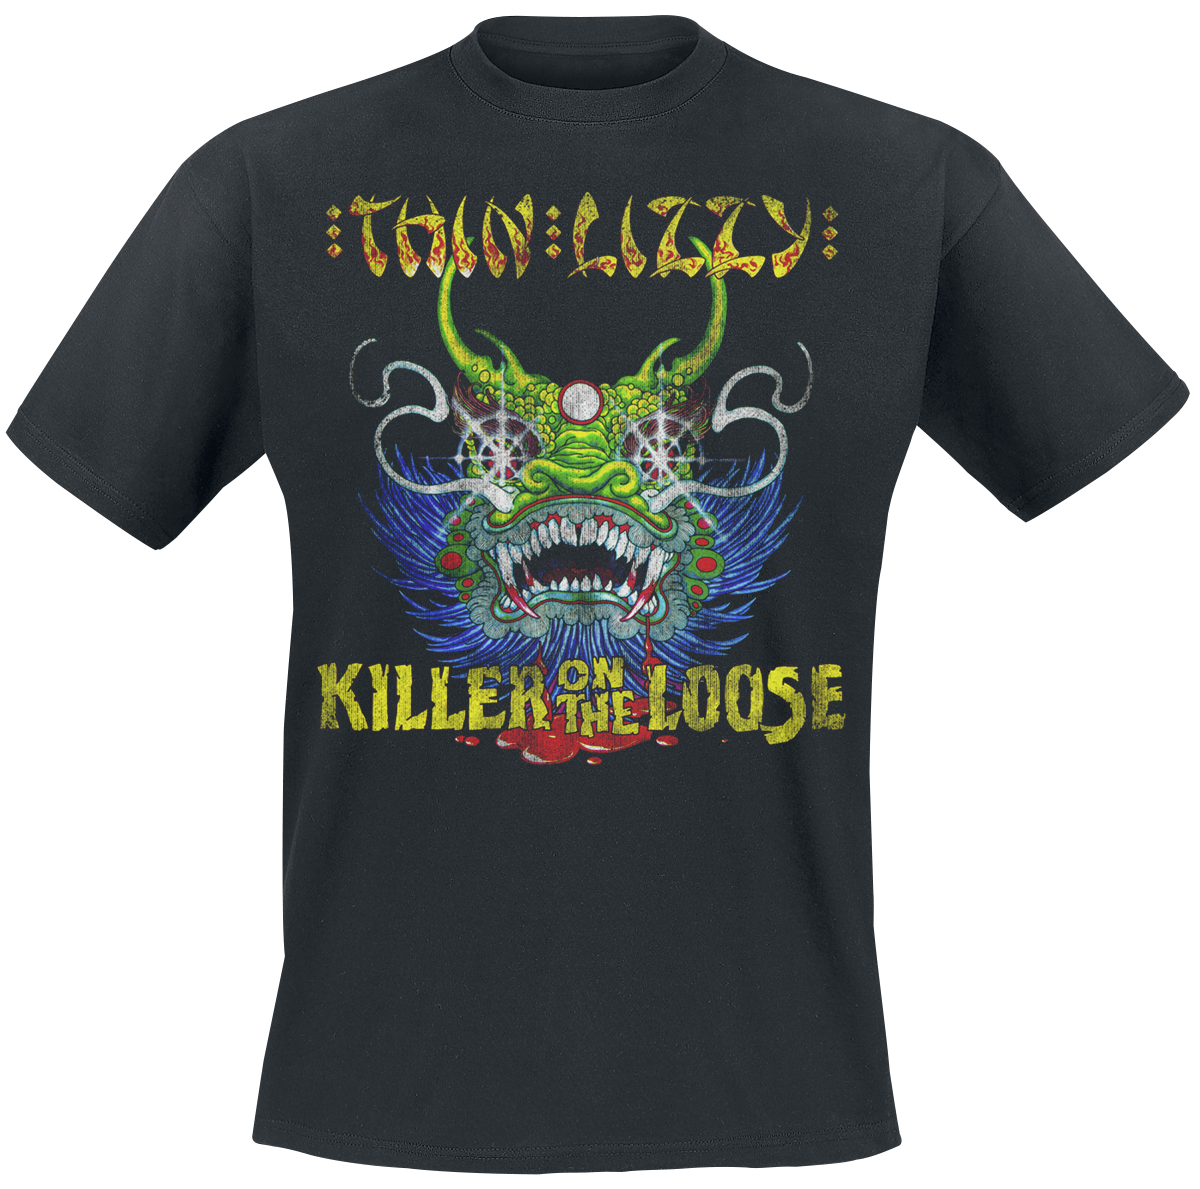 Thin Lizzy - Killer On The Loose - T-Shirt - black image